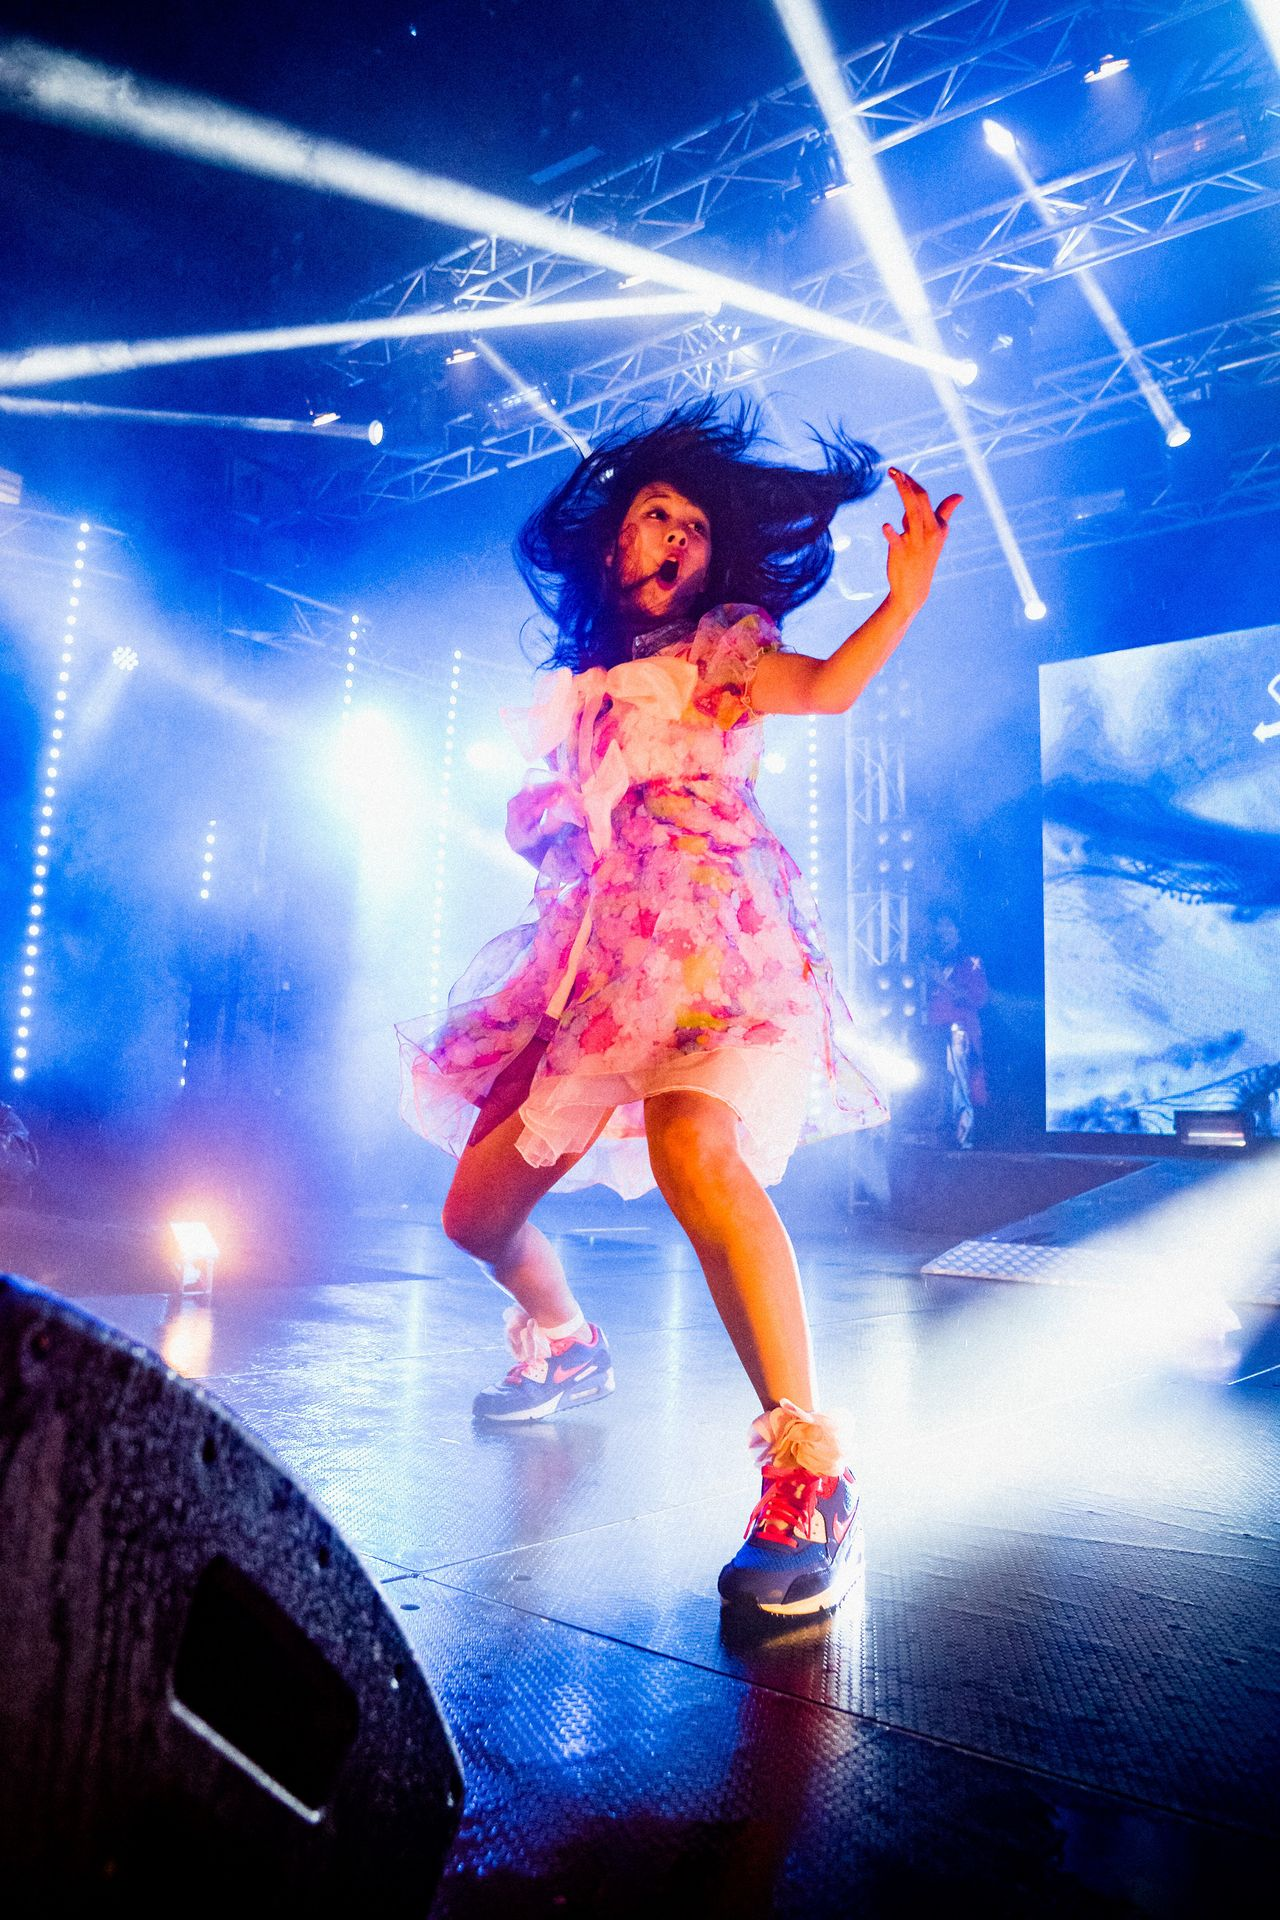 """<p><span style=""""color: #141823; font-family: helvetica, arial, sans-serif; font-size: 13px; line-height: 18px; background-color: #ffffff;"""">Nanami """"Seven Seas"""" Nagura performs during the 2015 Air Guitar World Championships.</span></p>"""